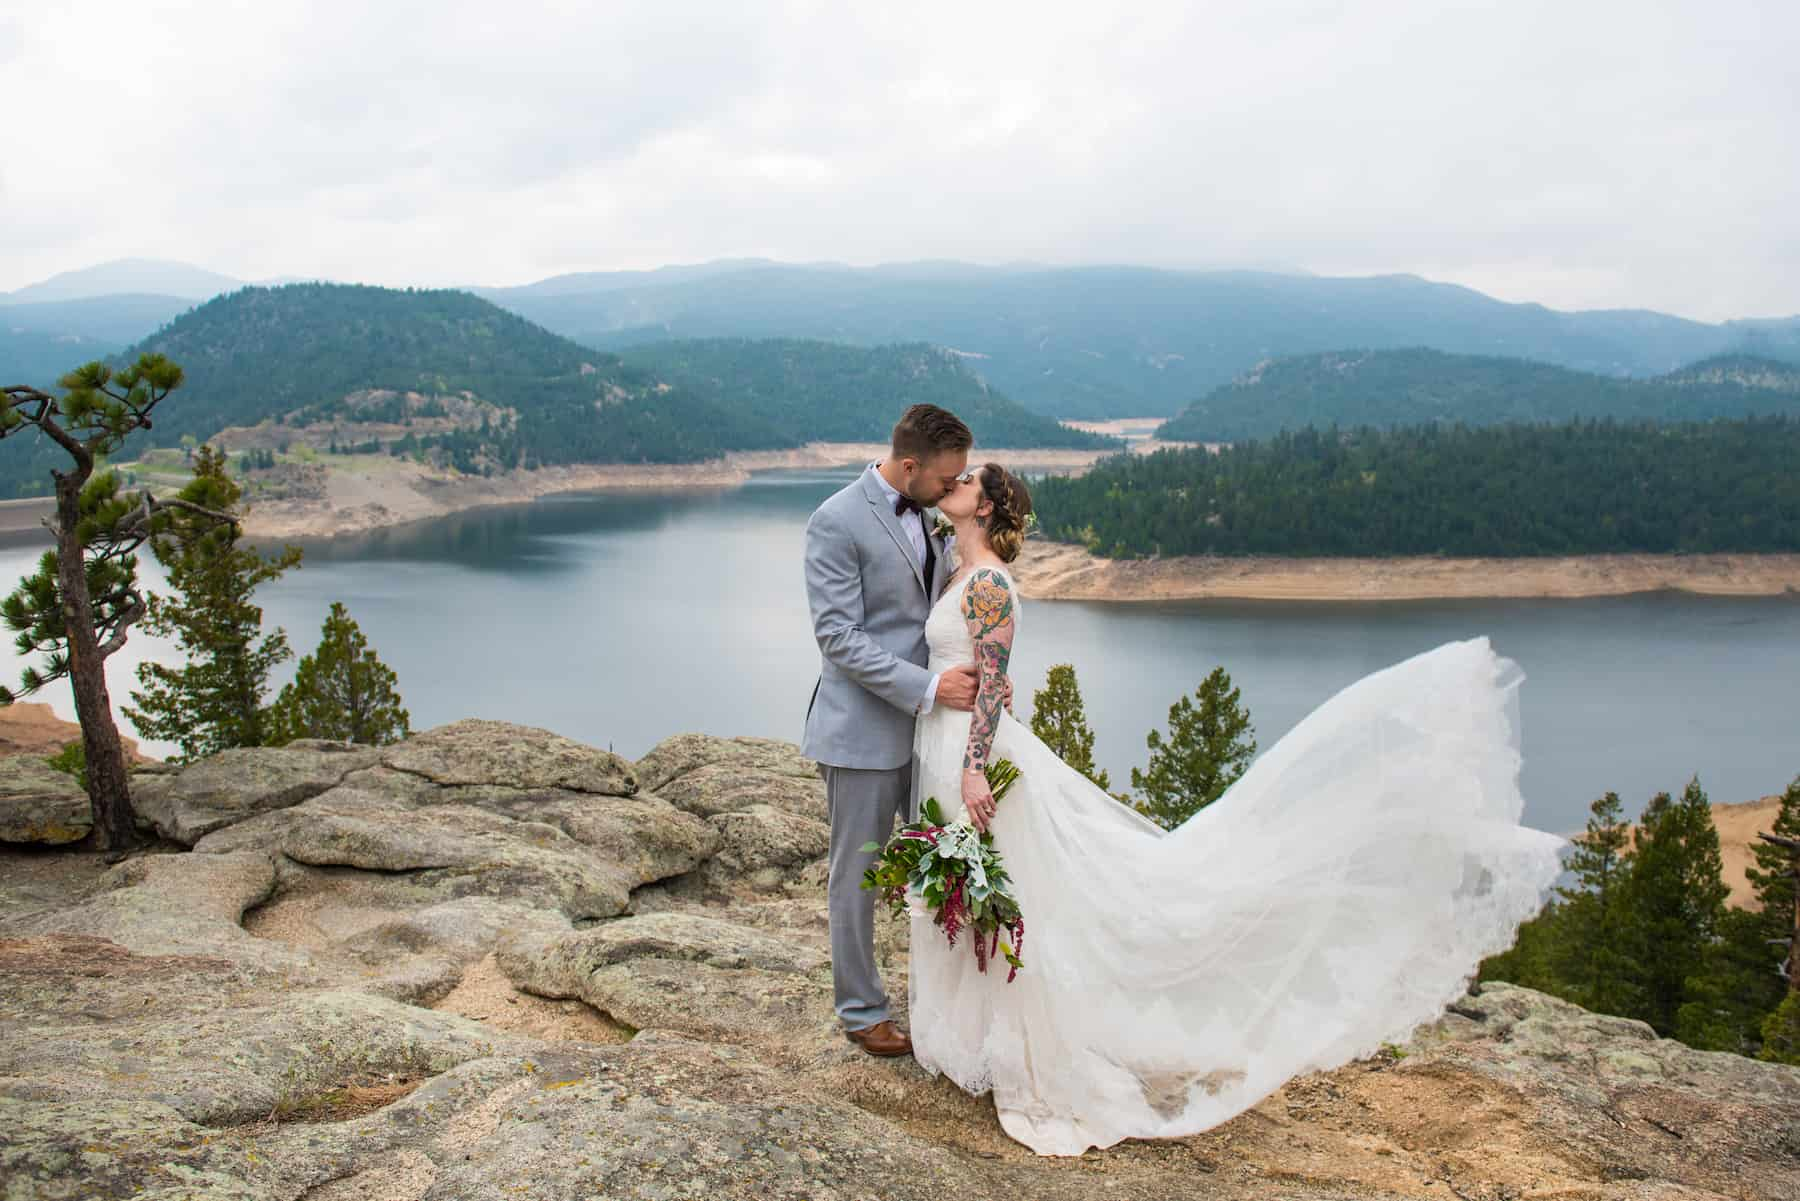 Best Places to Elope in Colorado with Mountains + Water